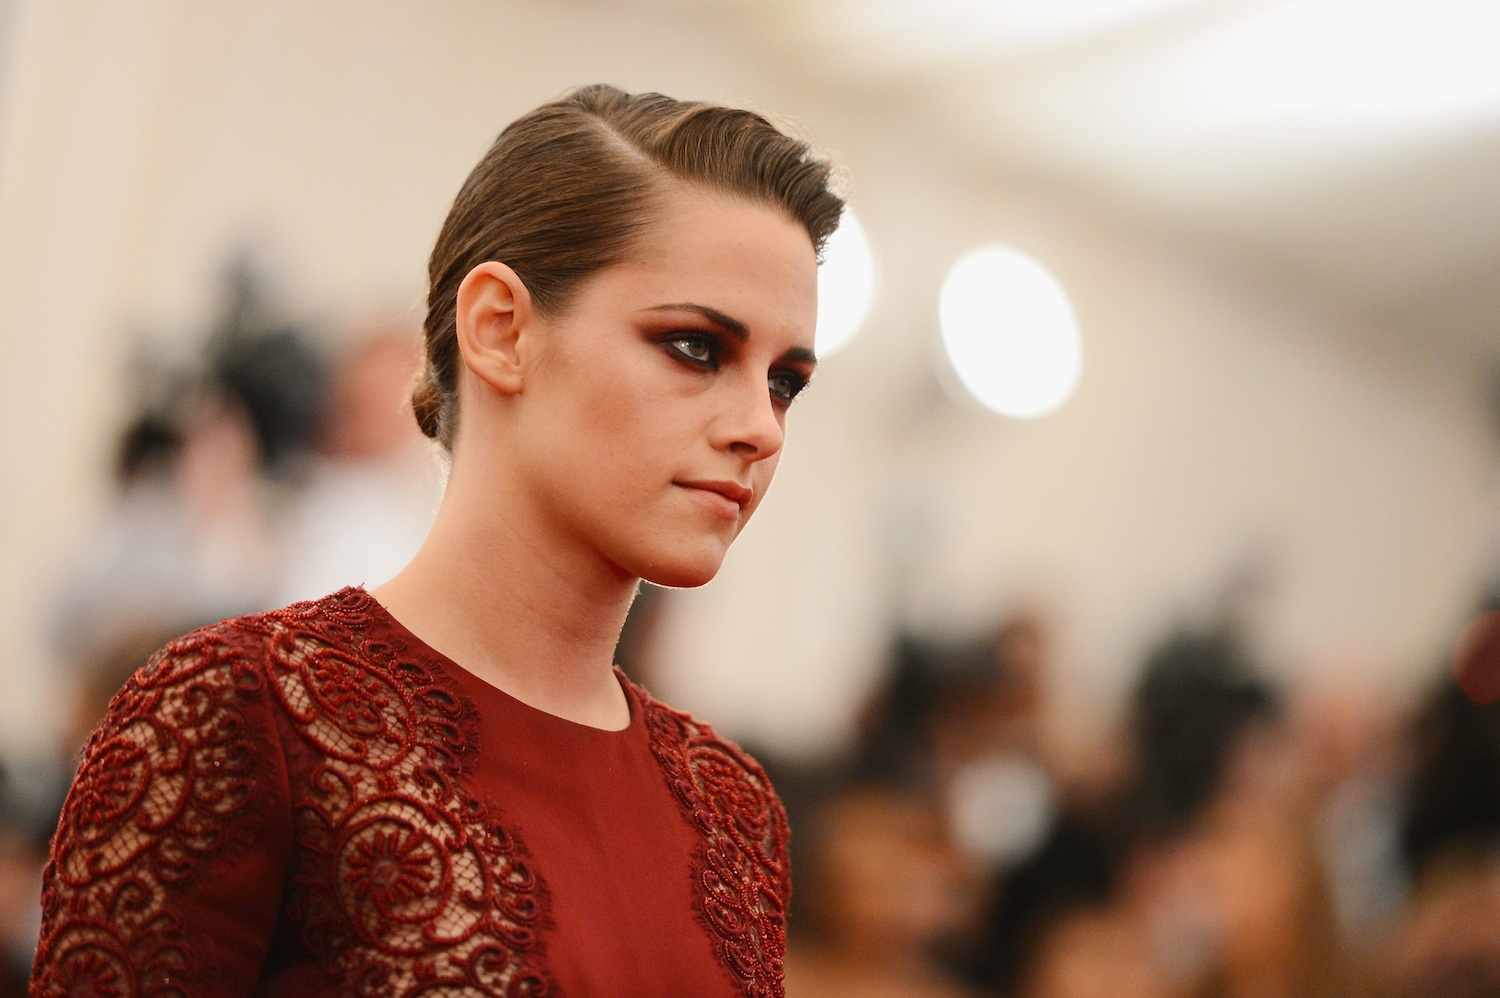 Kristen Stewart attends the Costume Institute Gala for the  PUNK: Chaos to Couture  exhibition at the Metropolitan Museum of Art on May 6, 2013 in New York City.